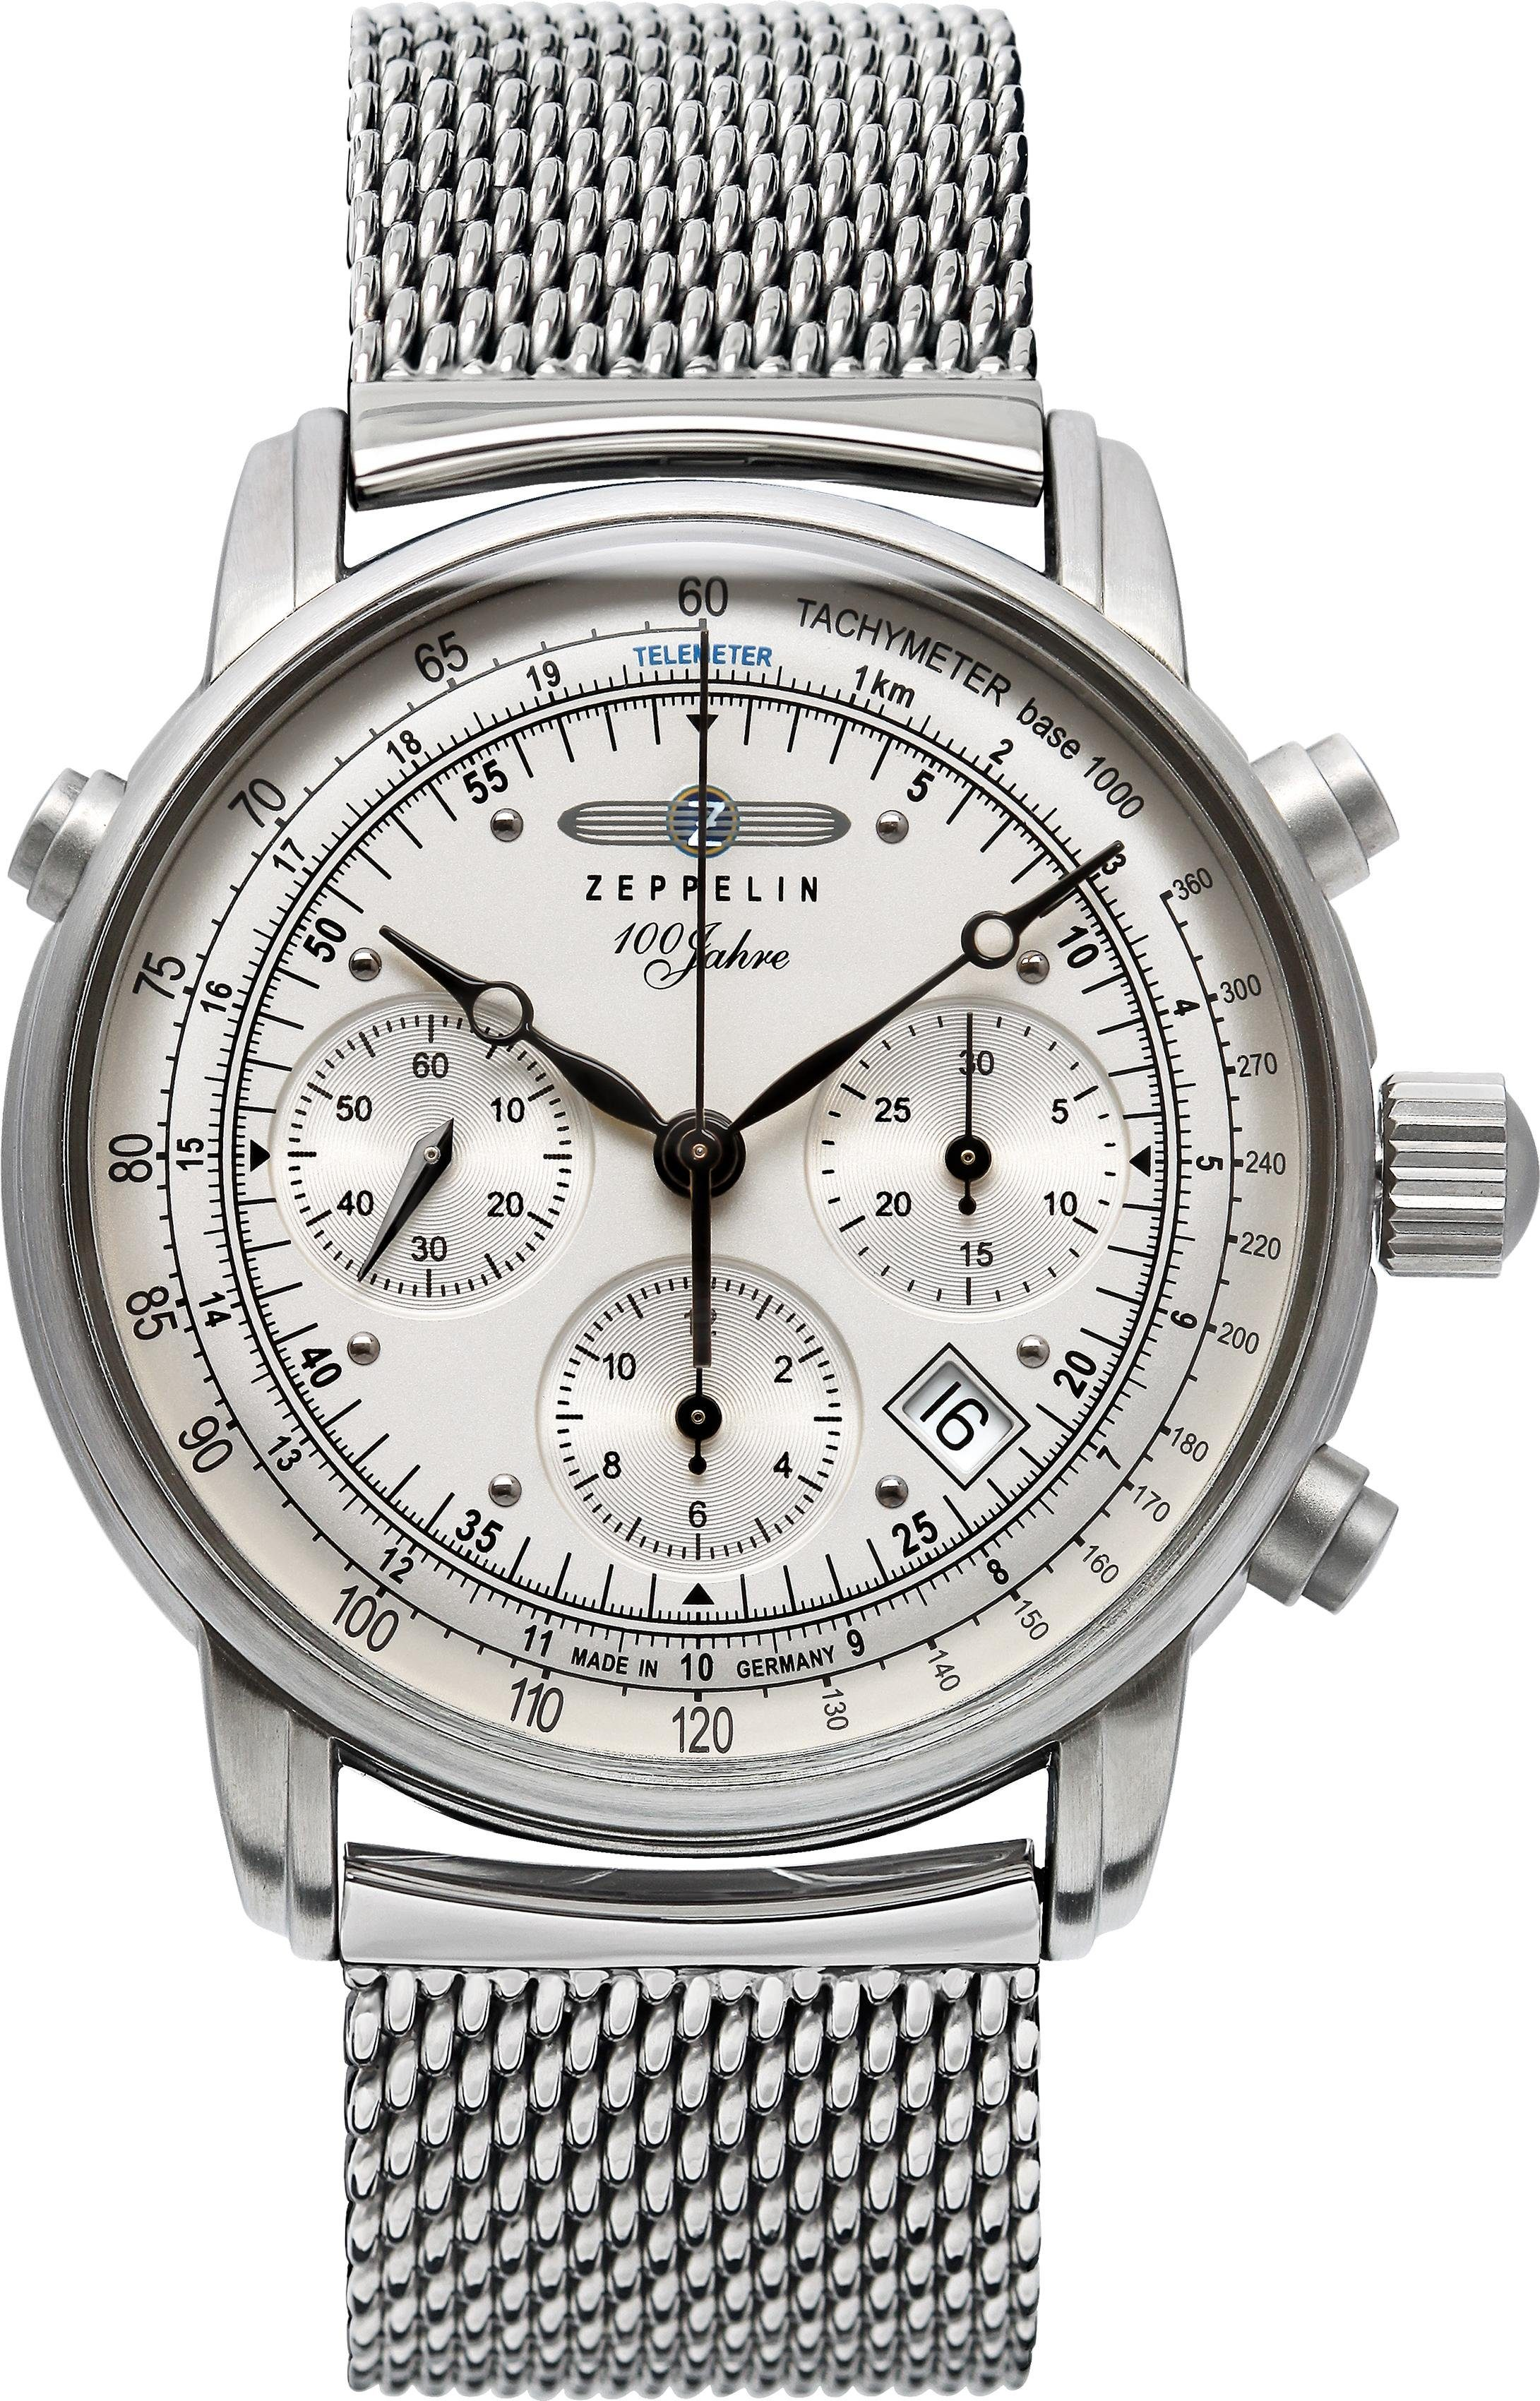 ZEPPELIN Chronograph »100 Jahre Zeppelin, 7618M-1«, Made in Germany